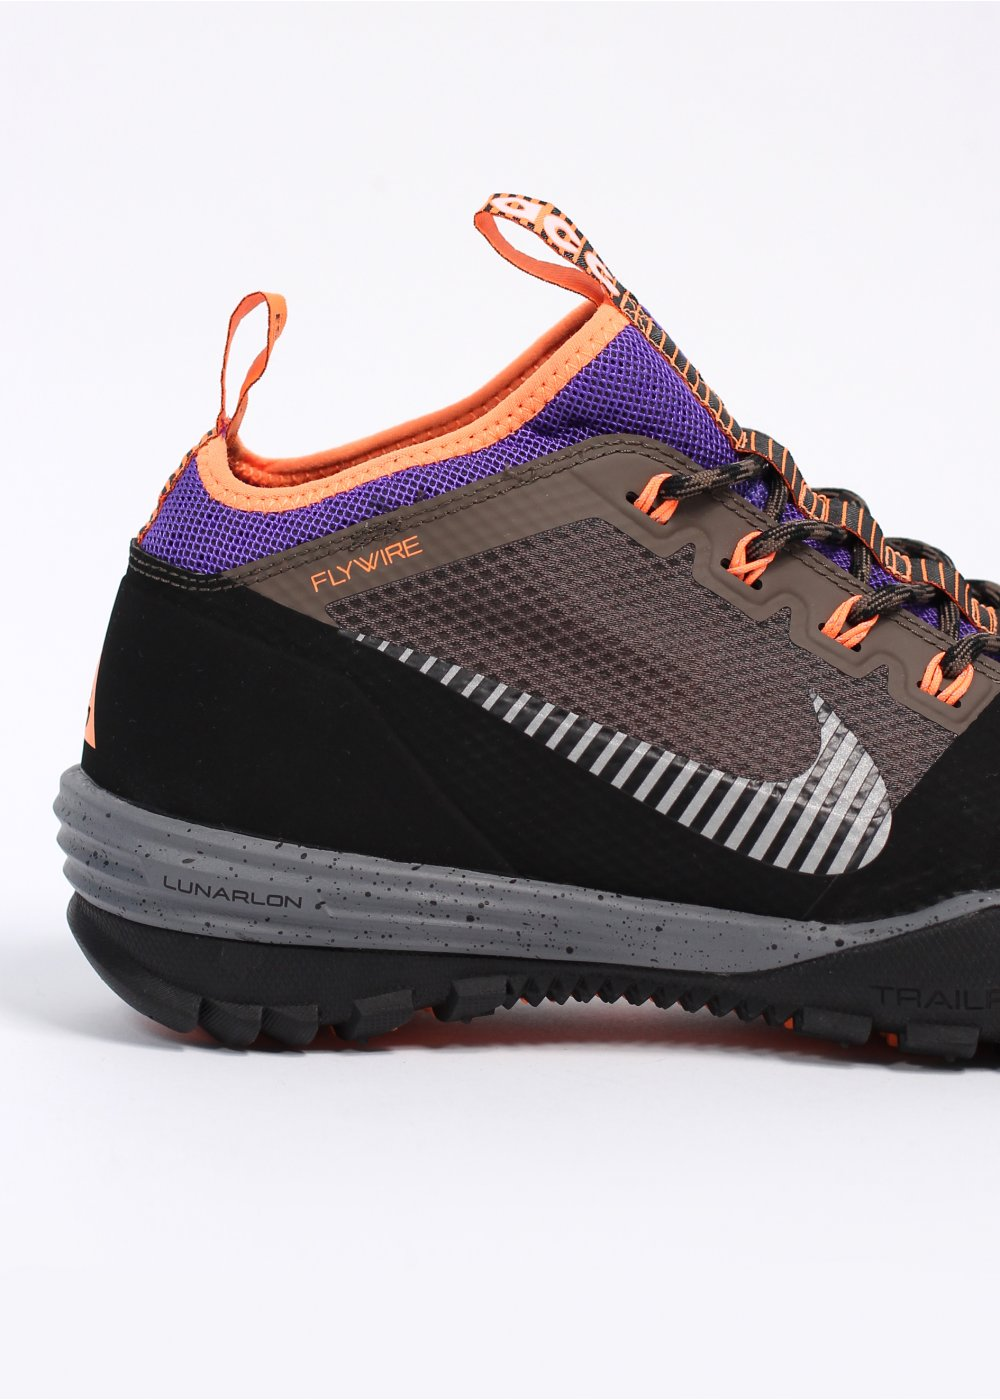 2eb751d0cfb1 promo code for air max 93 eastbay fb186 0fd14